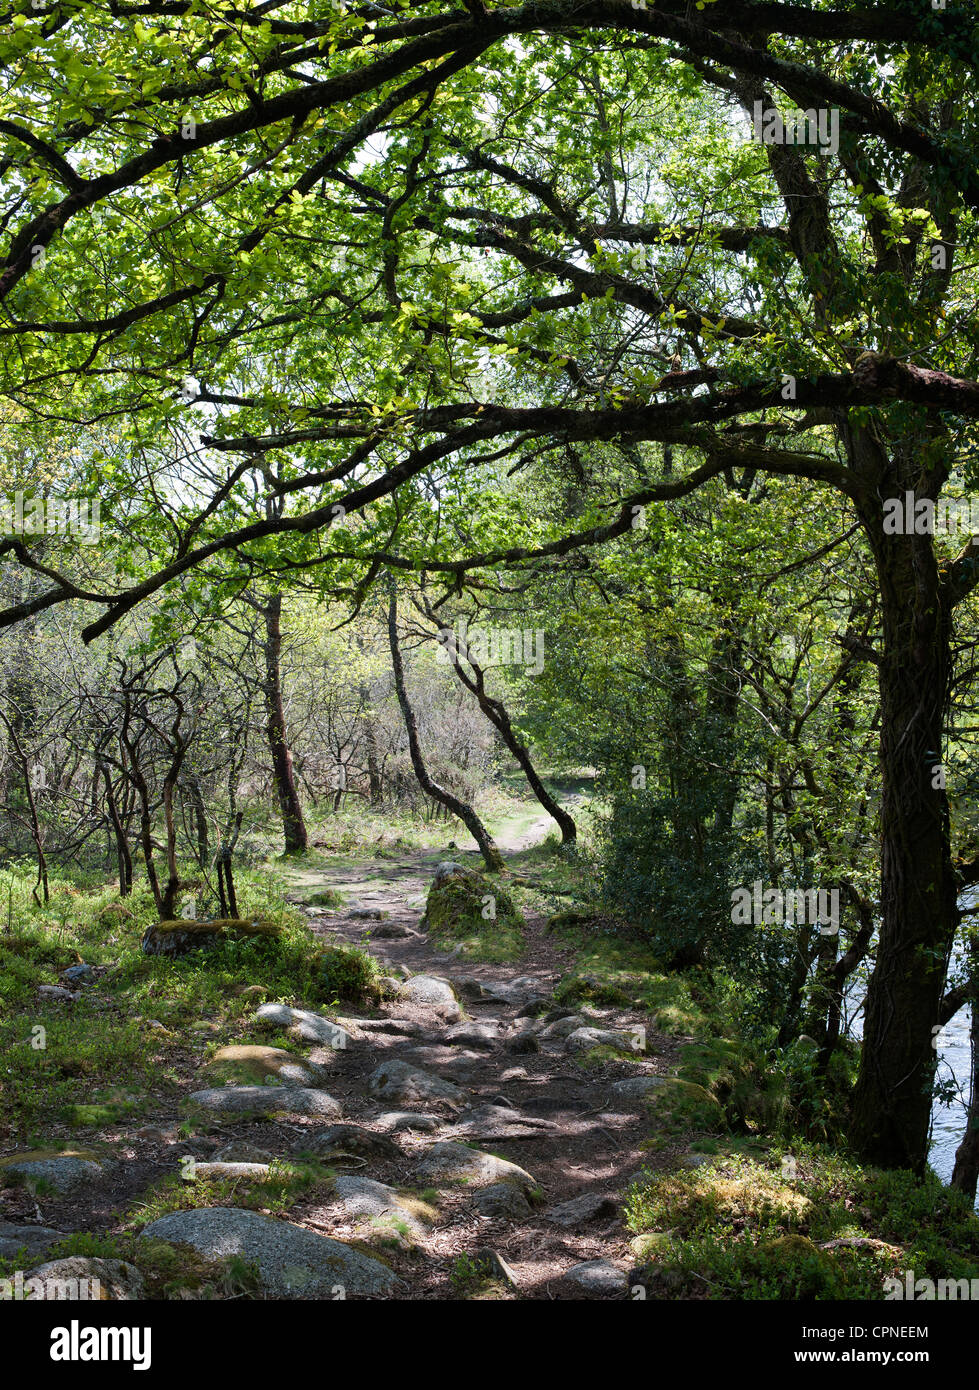 Oak and beech trees along the pathway next to the River Dart. Devon, England - Stock Image